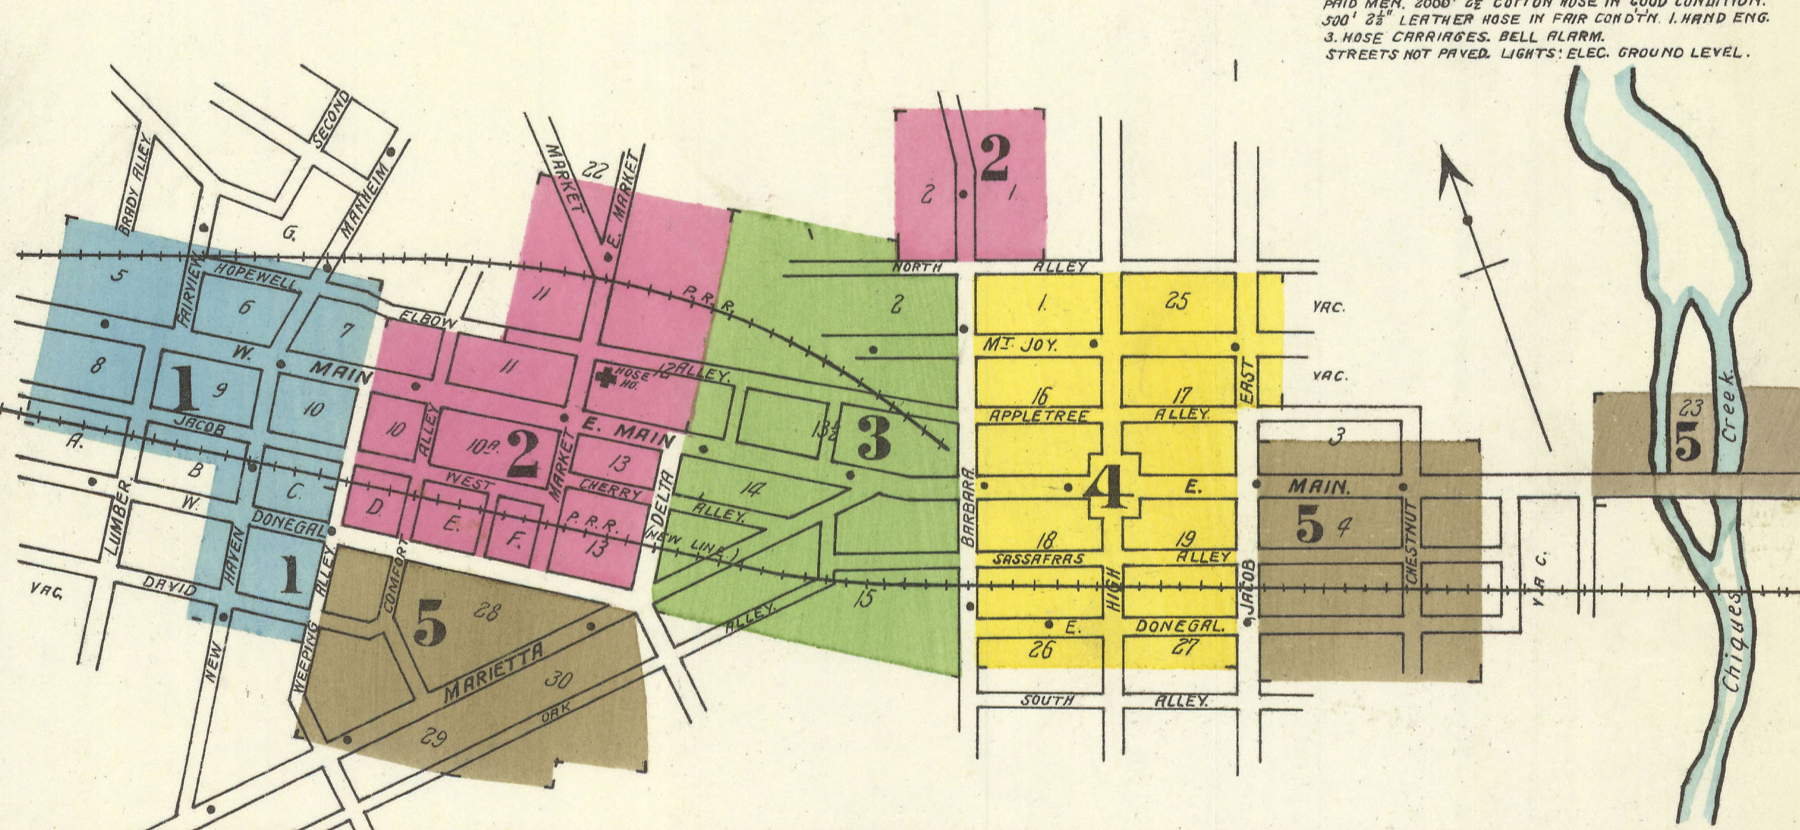 1902 Sanborn Fire Insurance Map showing the final arrangement including the removal of the H&L alignment east of Barbara Street, the same basic trackage arrangement that survives today. Map collection of the Penn State University Library.